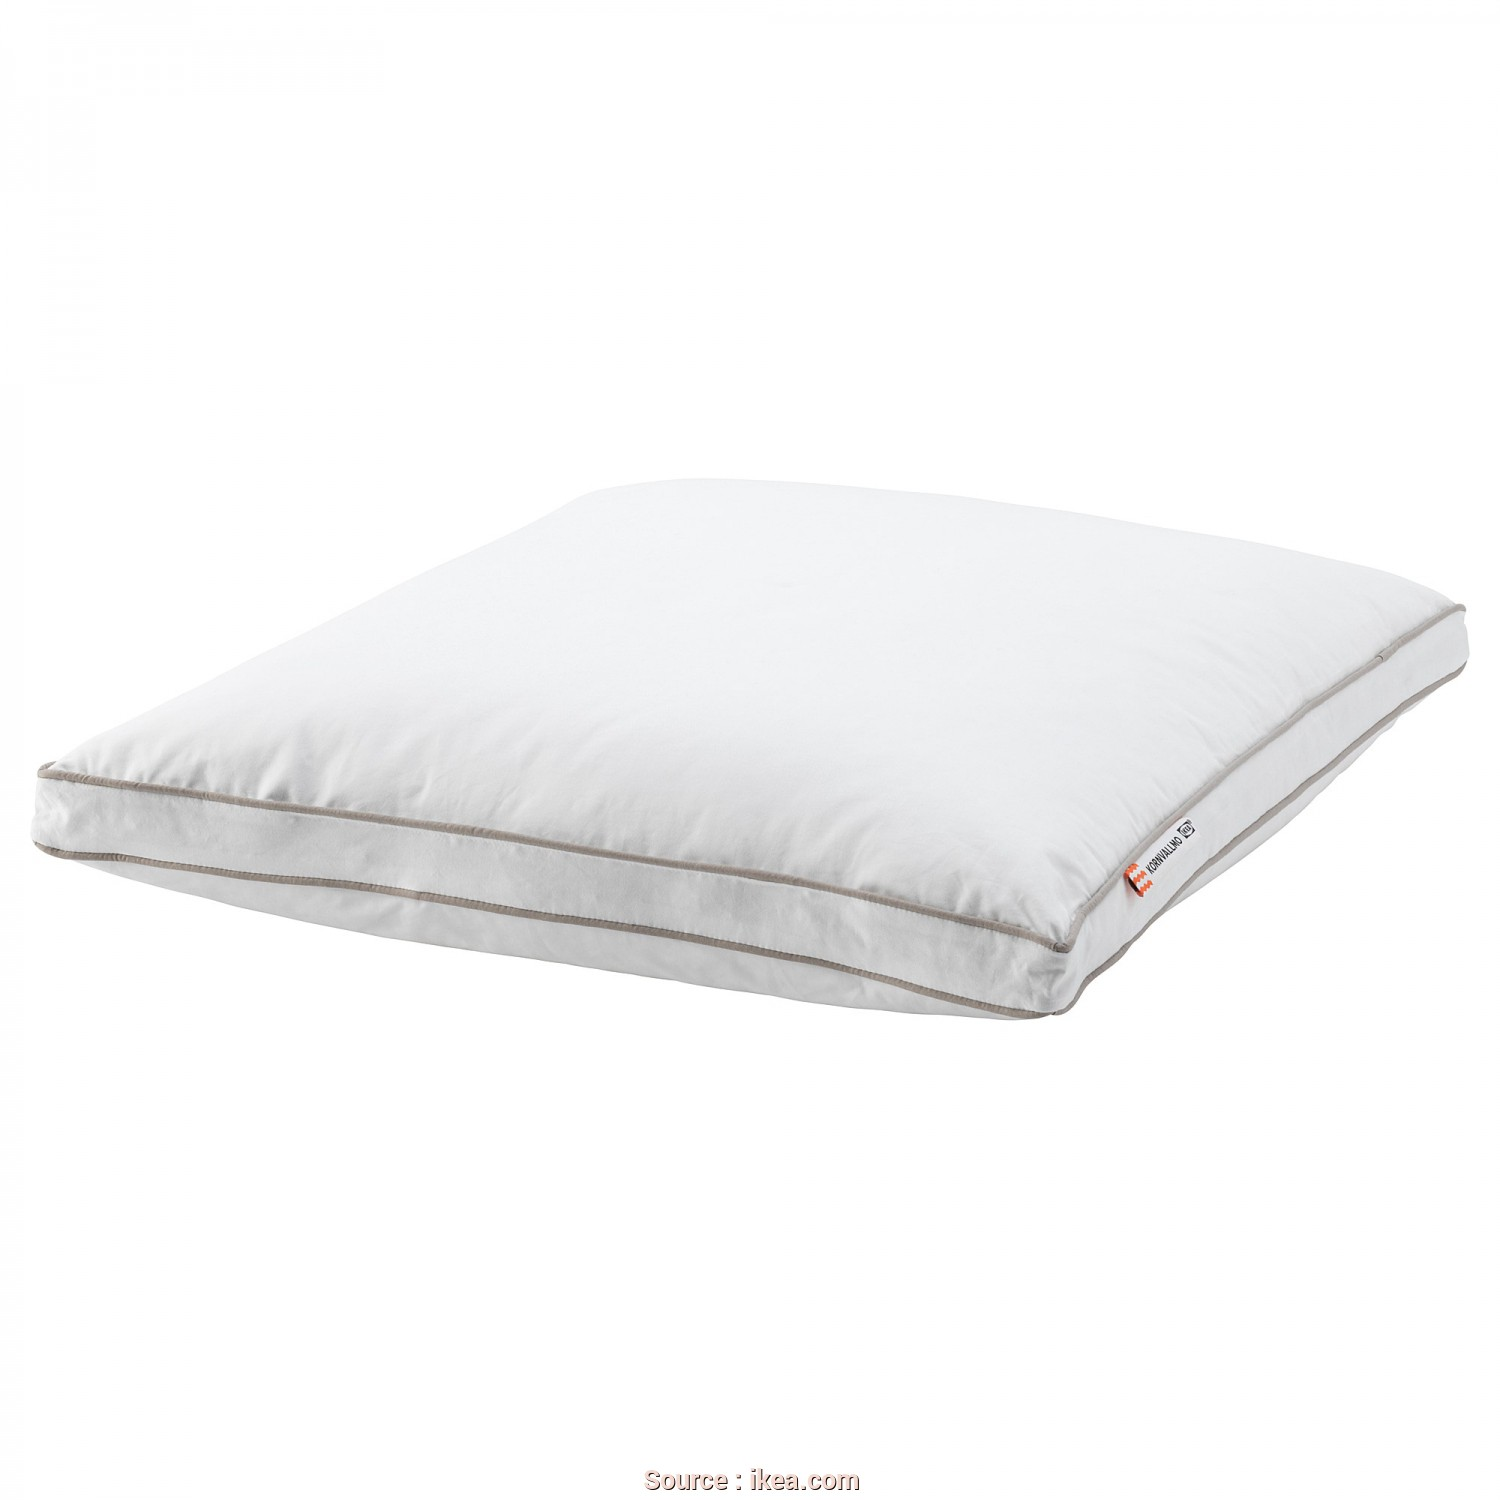 Ikea Cuscino Rolleka, Eccezionale IKEA KORNVALLMO Pillow, Softer A Soft Pillow In Cotton Sateen, Filled With Duck Down